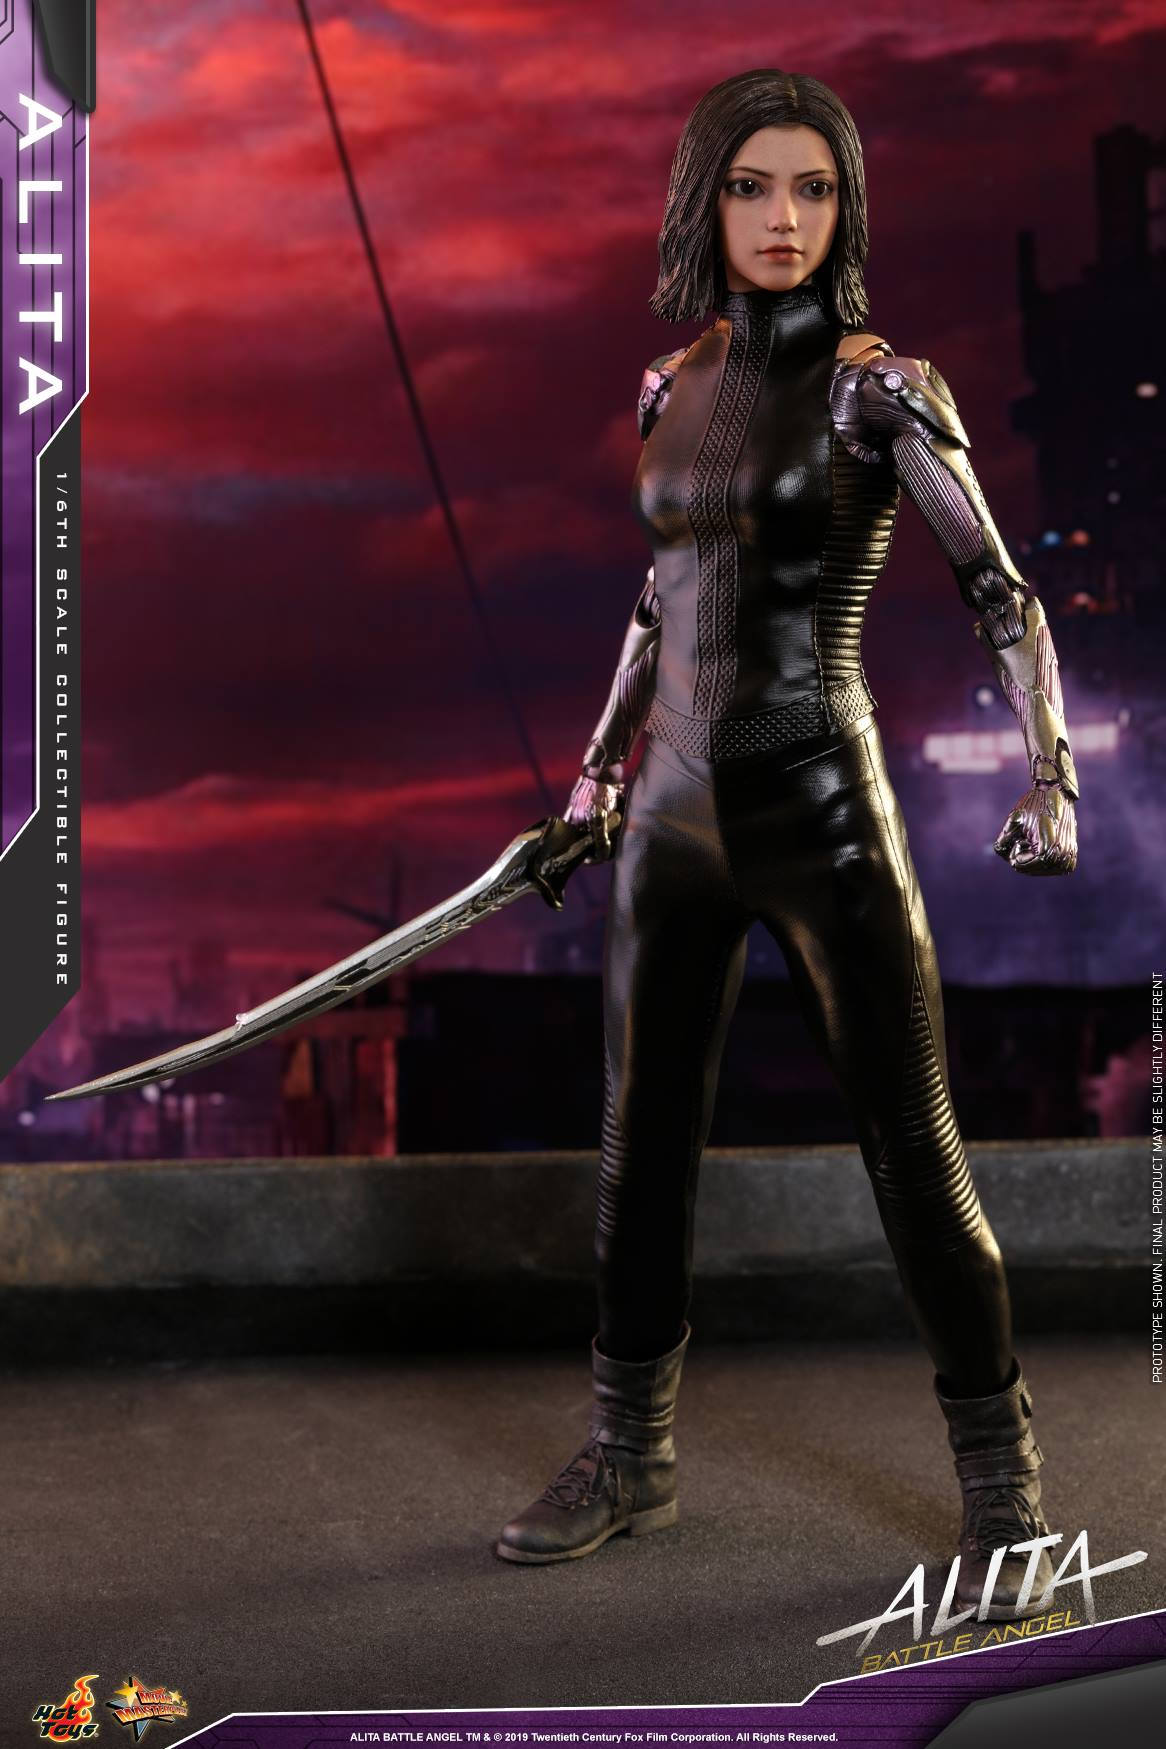 Pre-Order Hot Toys Alita Battle Angel Sixth Scale Figure